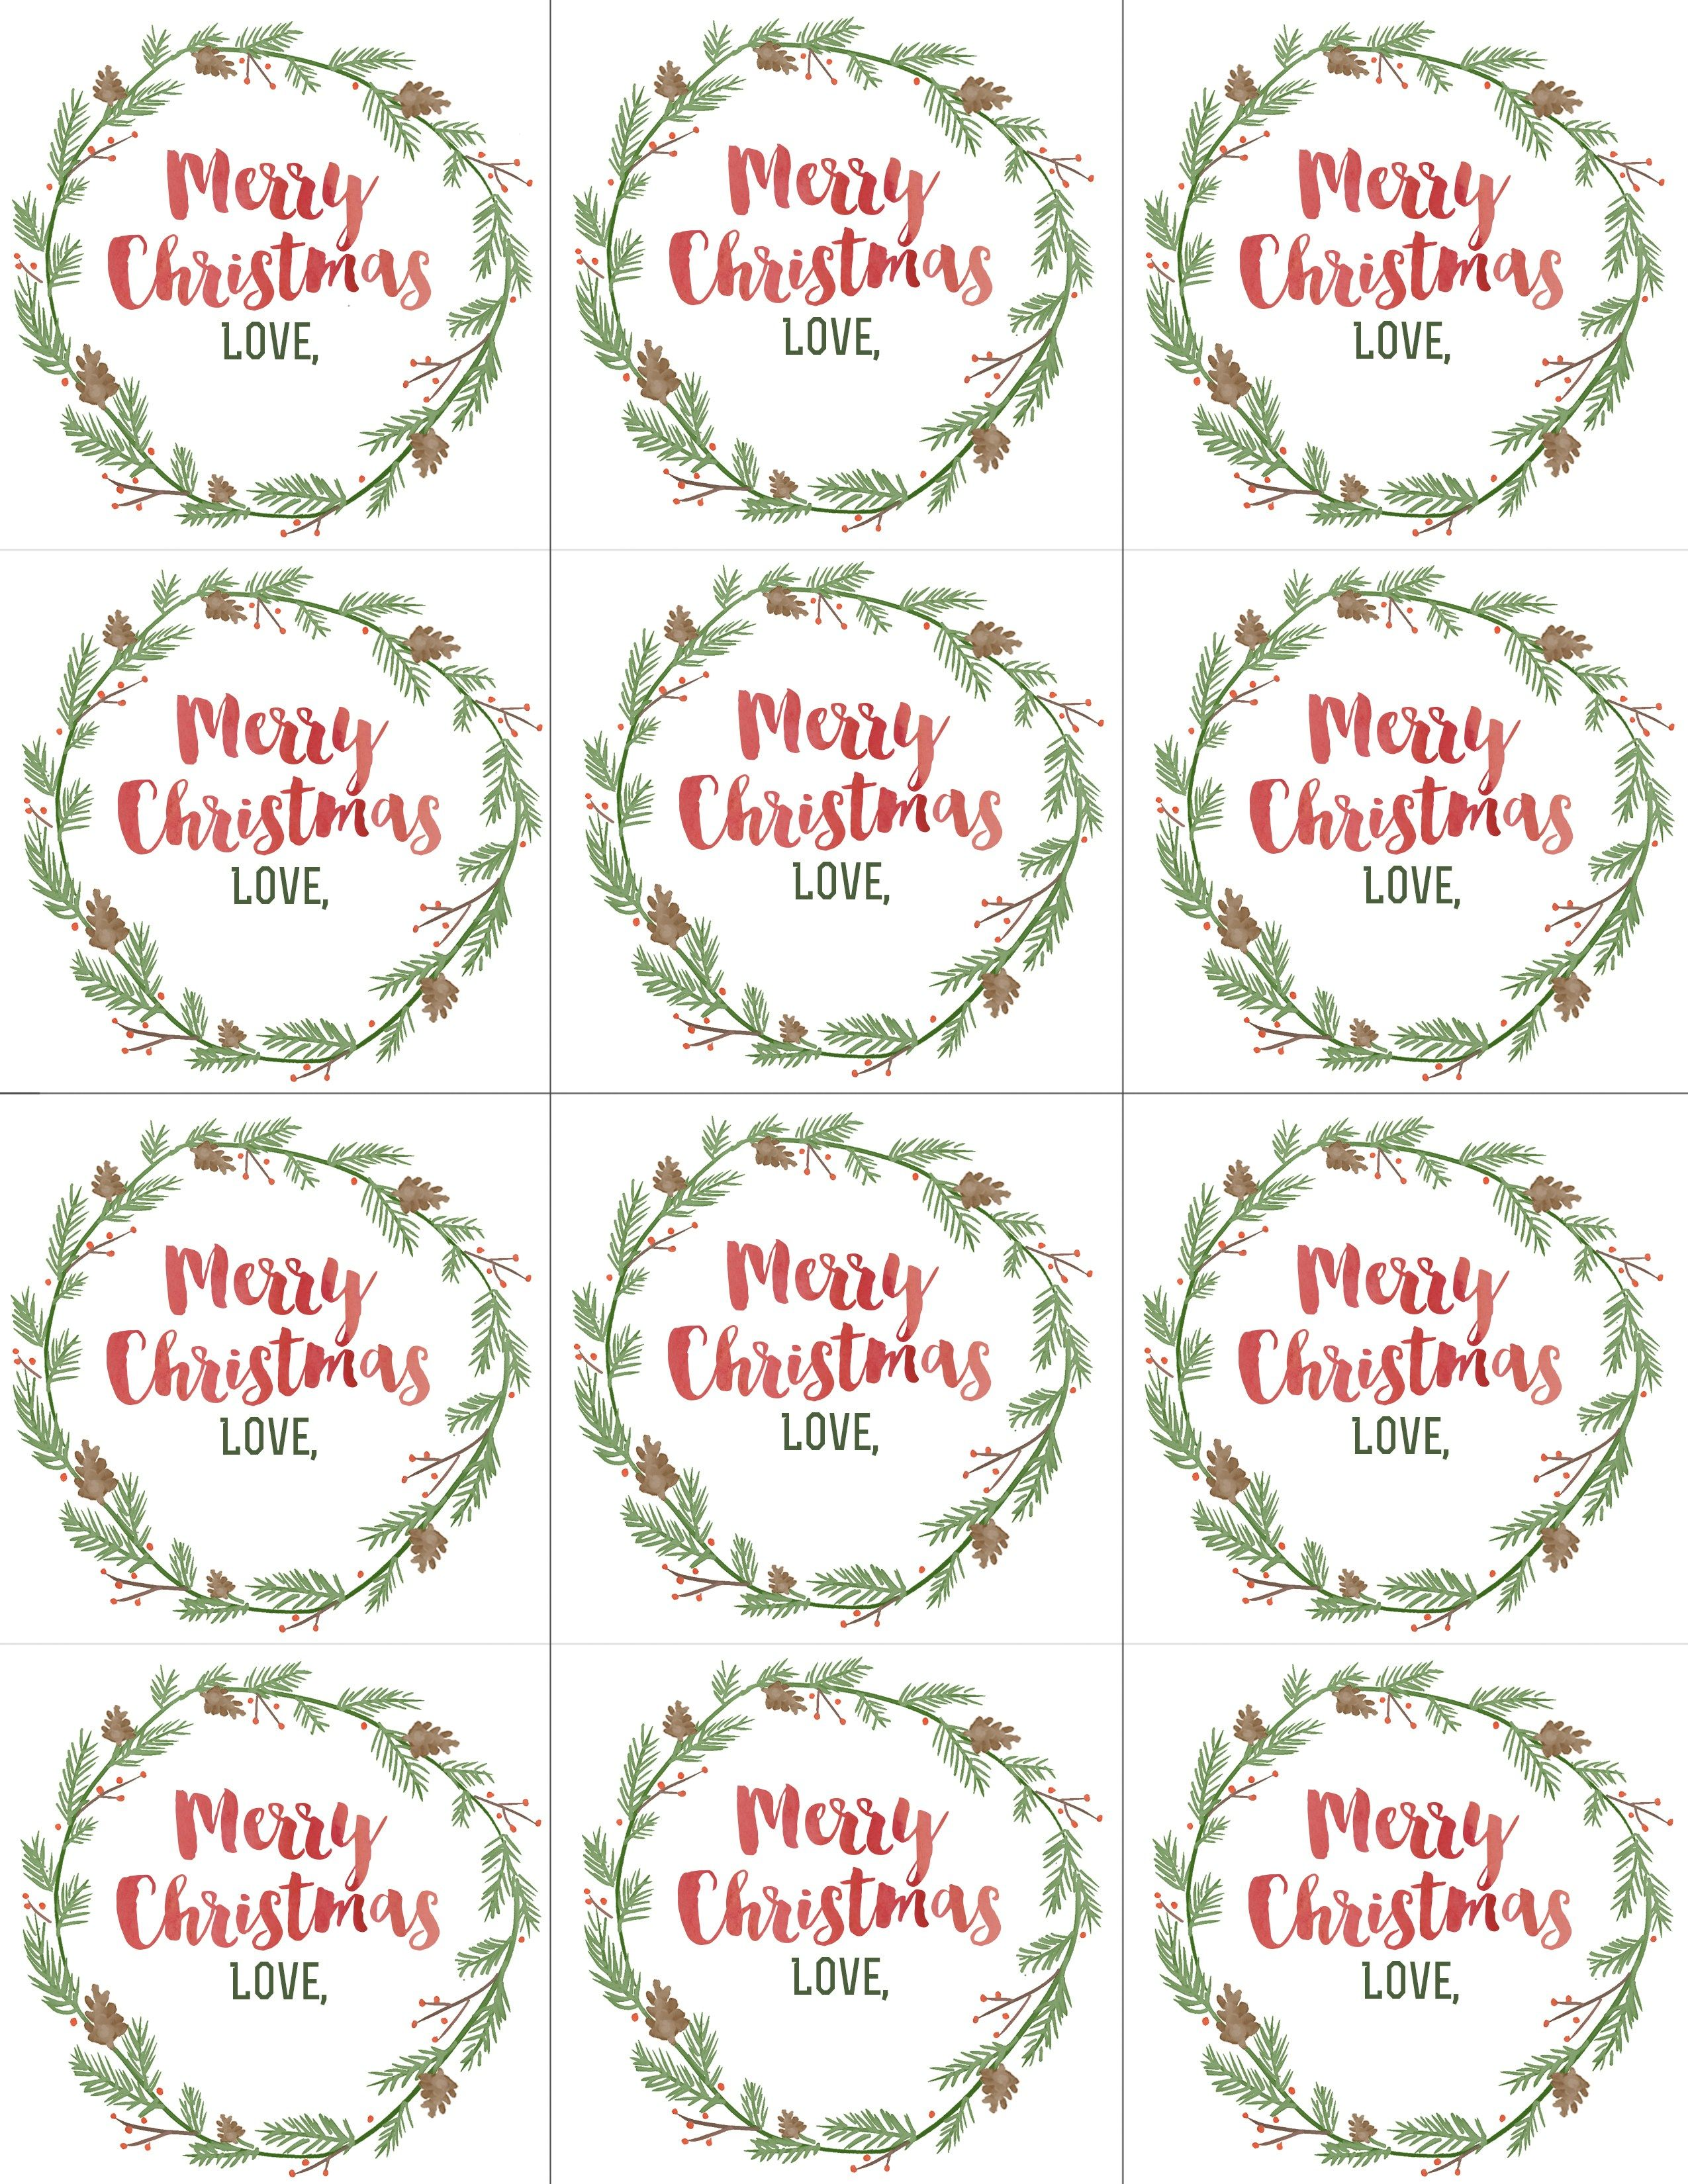 Hand Painted Gift Tags FREE Printable   christmas gift ideas ...